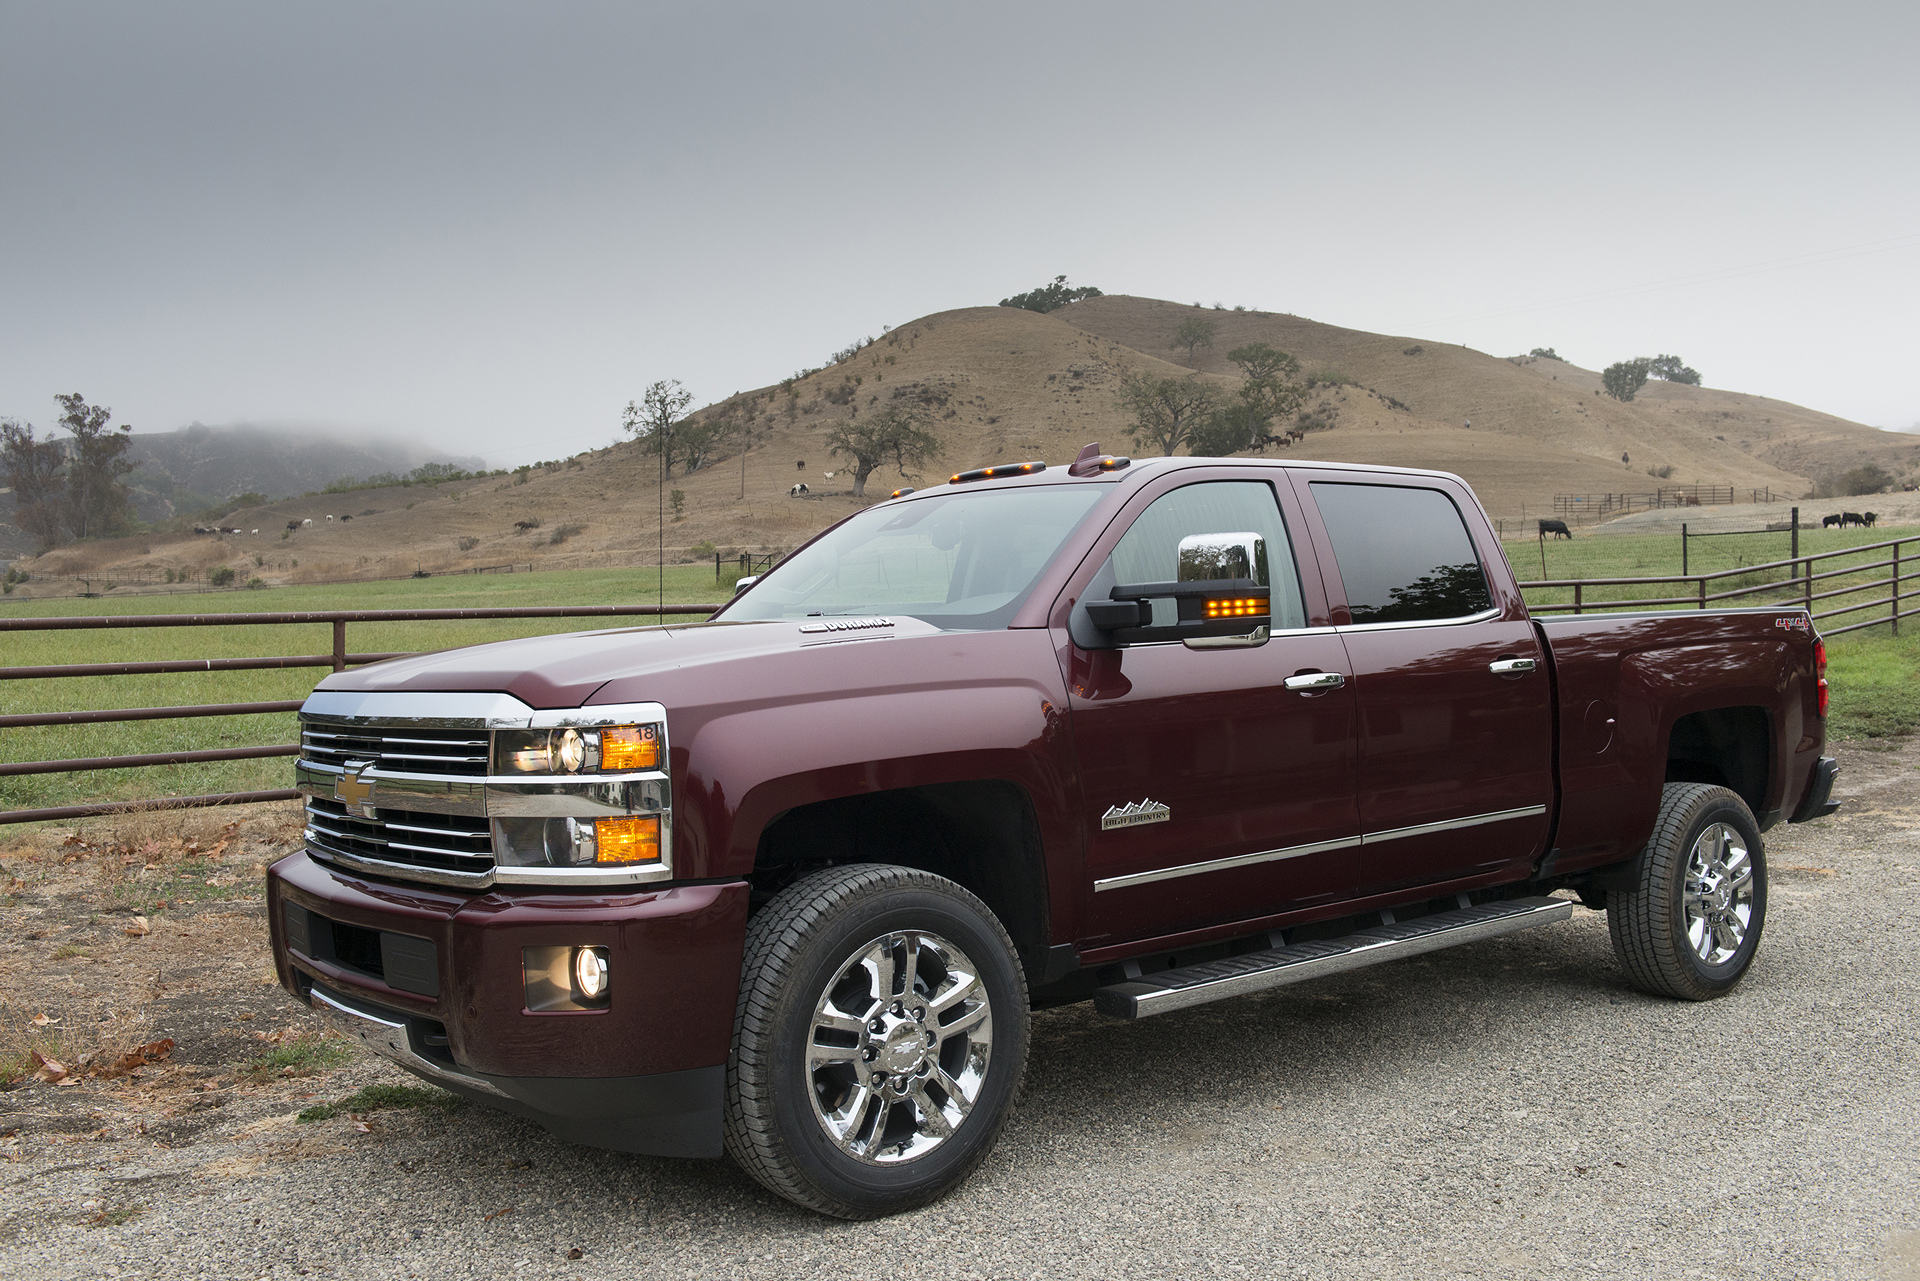 2016 Chevrolet Silverado HD Review - Carrrs Auto Portal